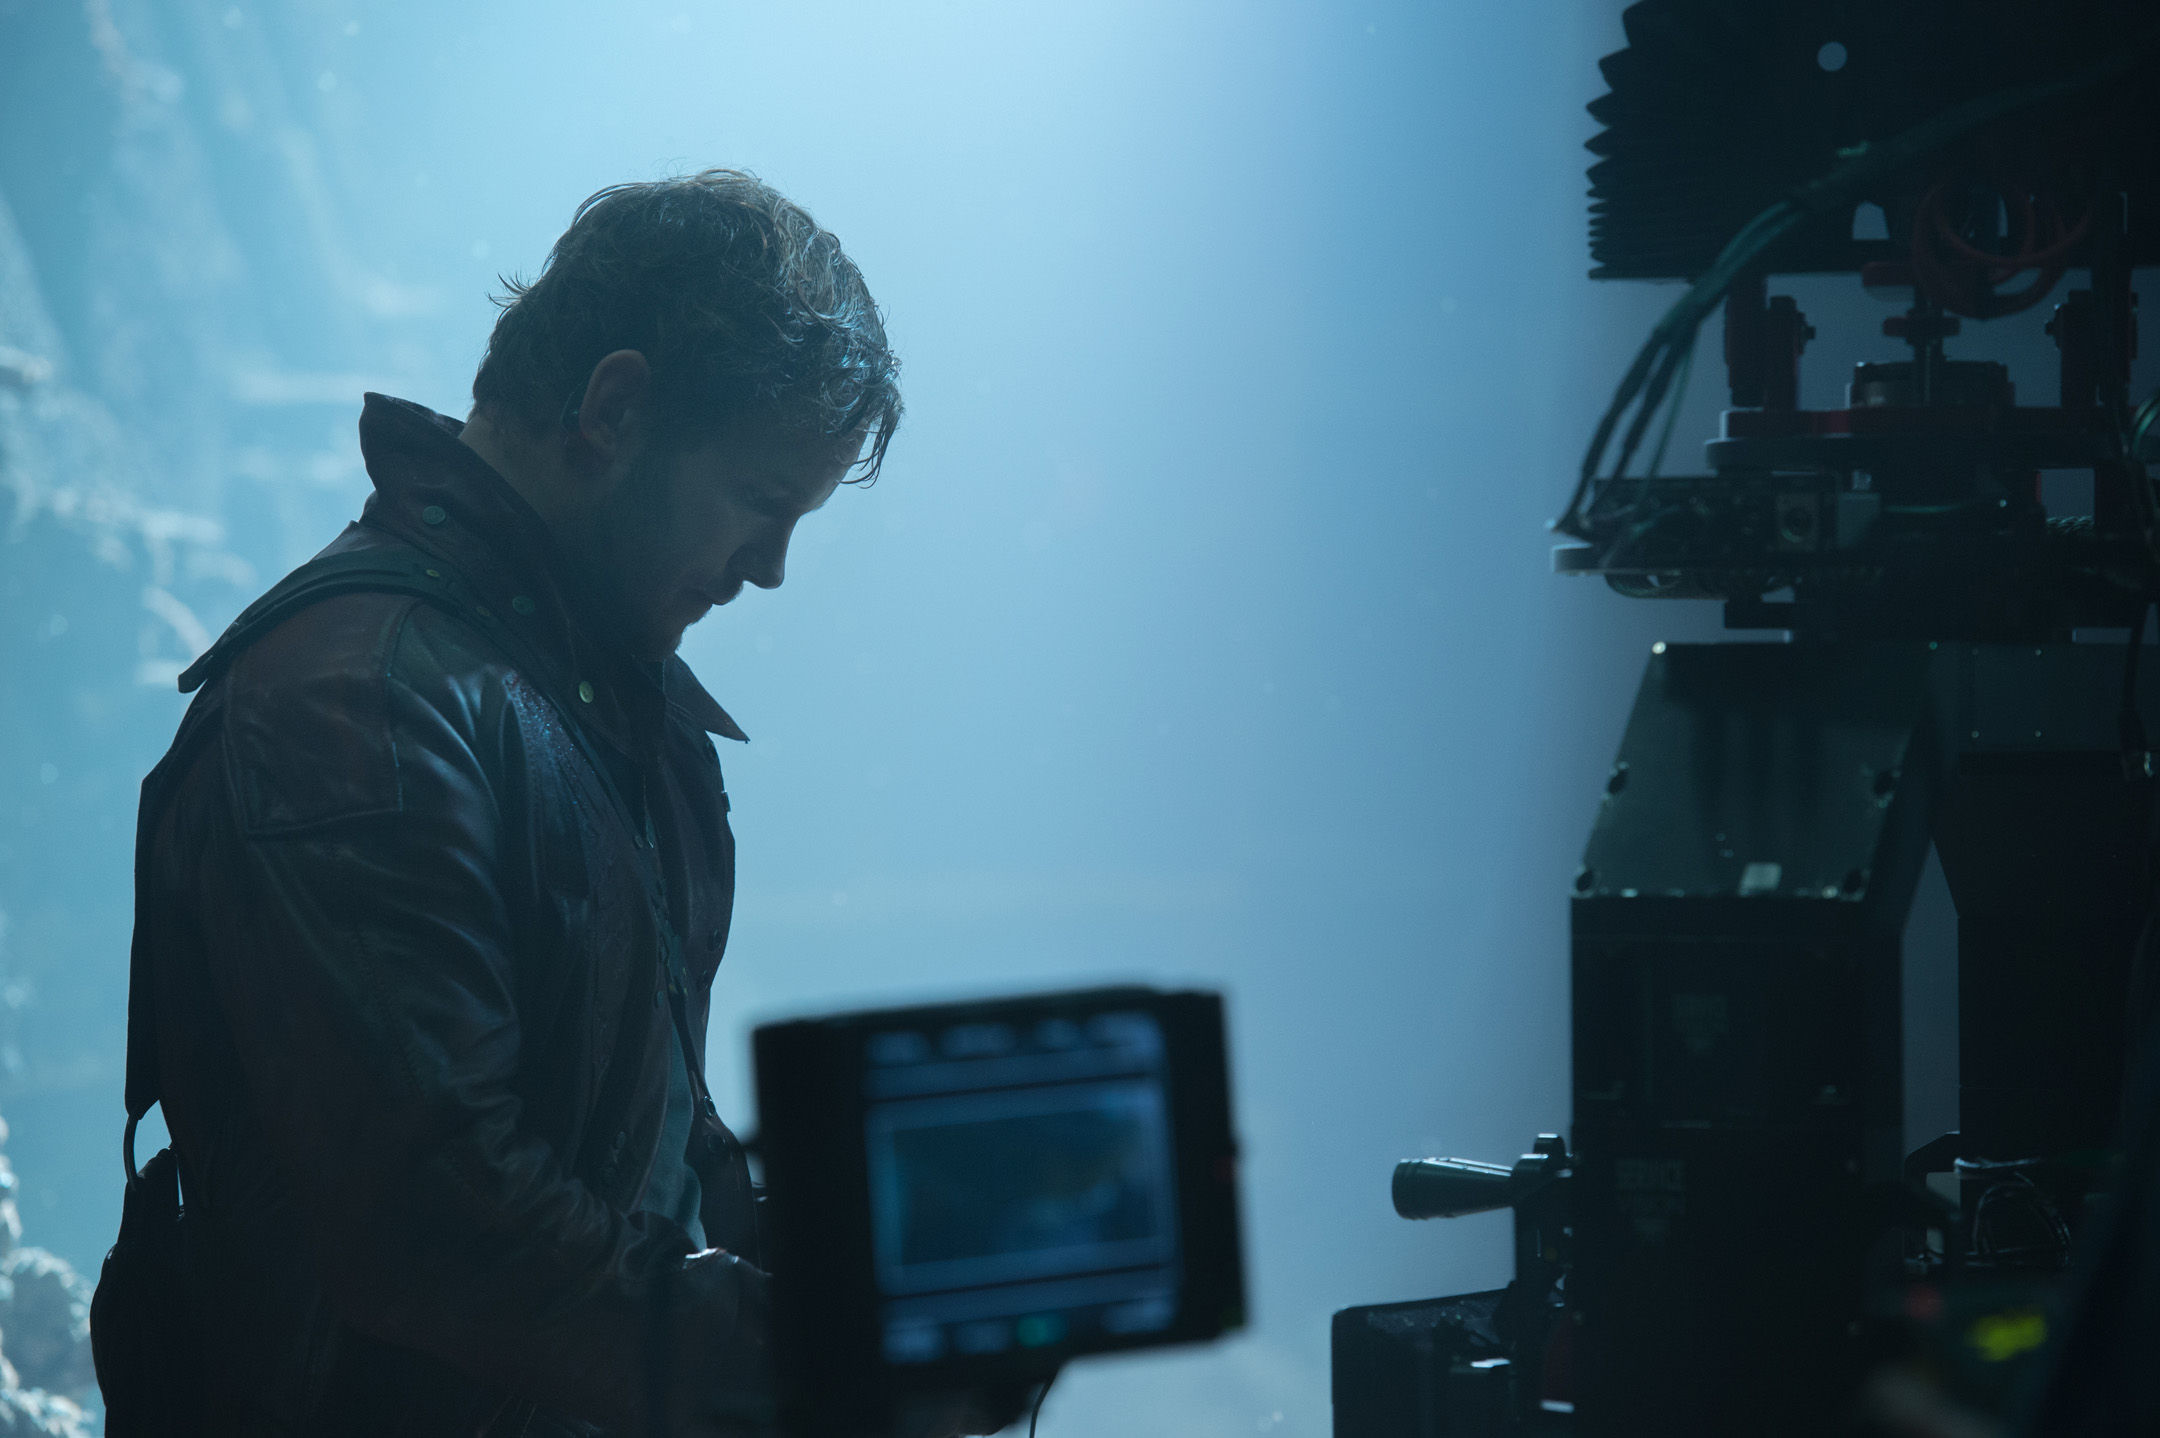 6 New Behind-The-Scenes 'Guardians of the Galaxy' Photos